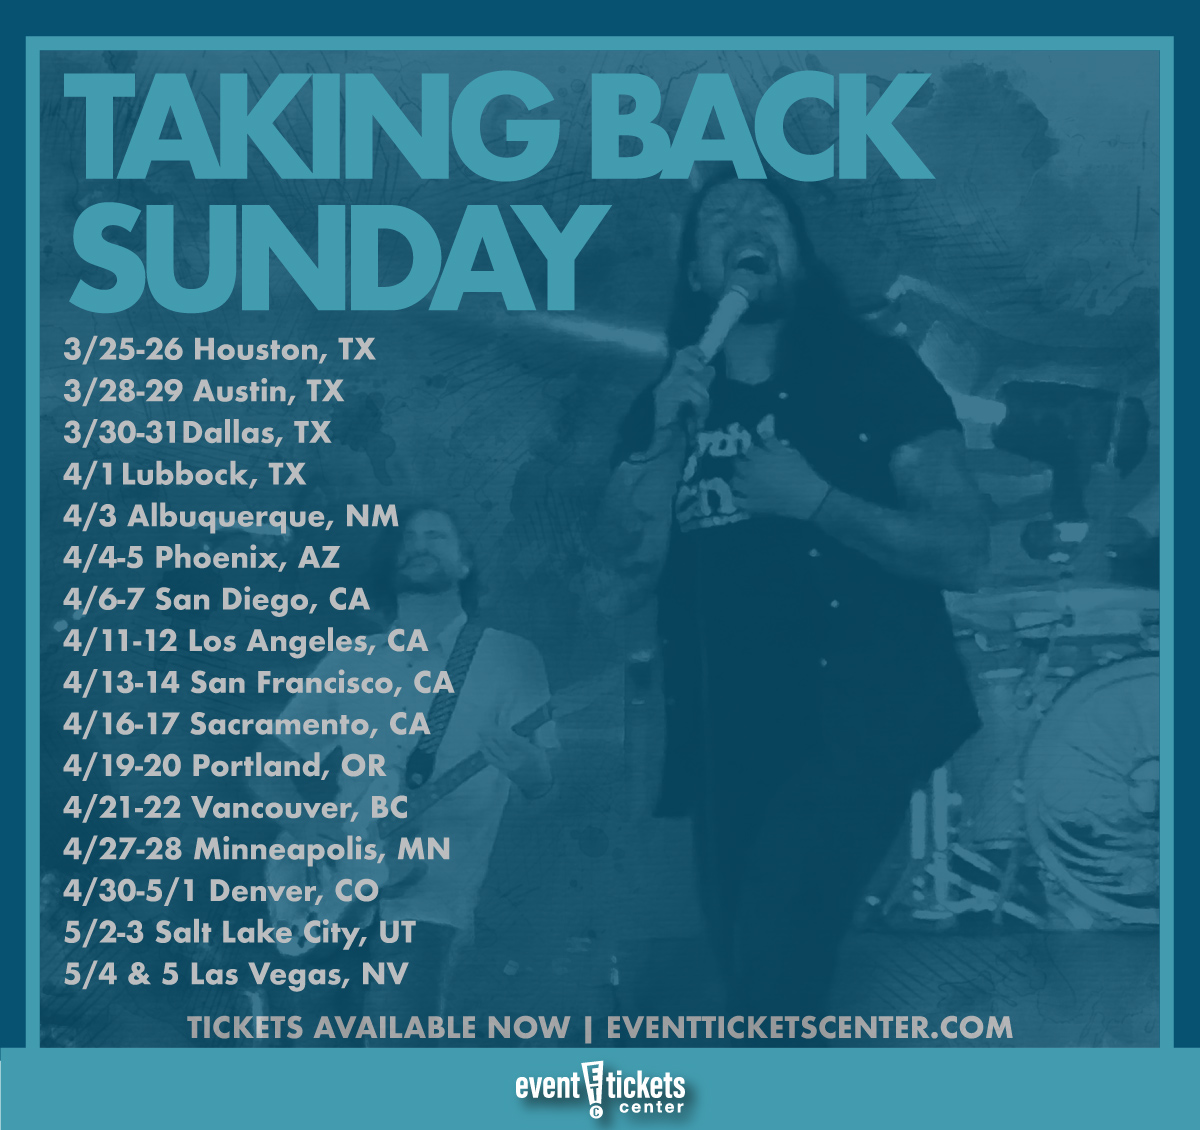 taking back sunday tour map